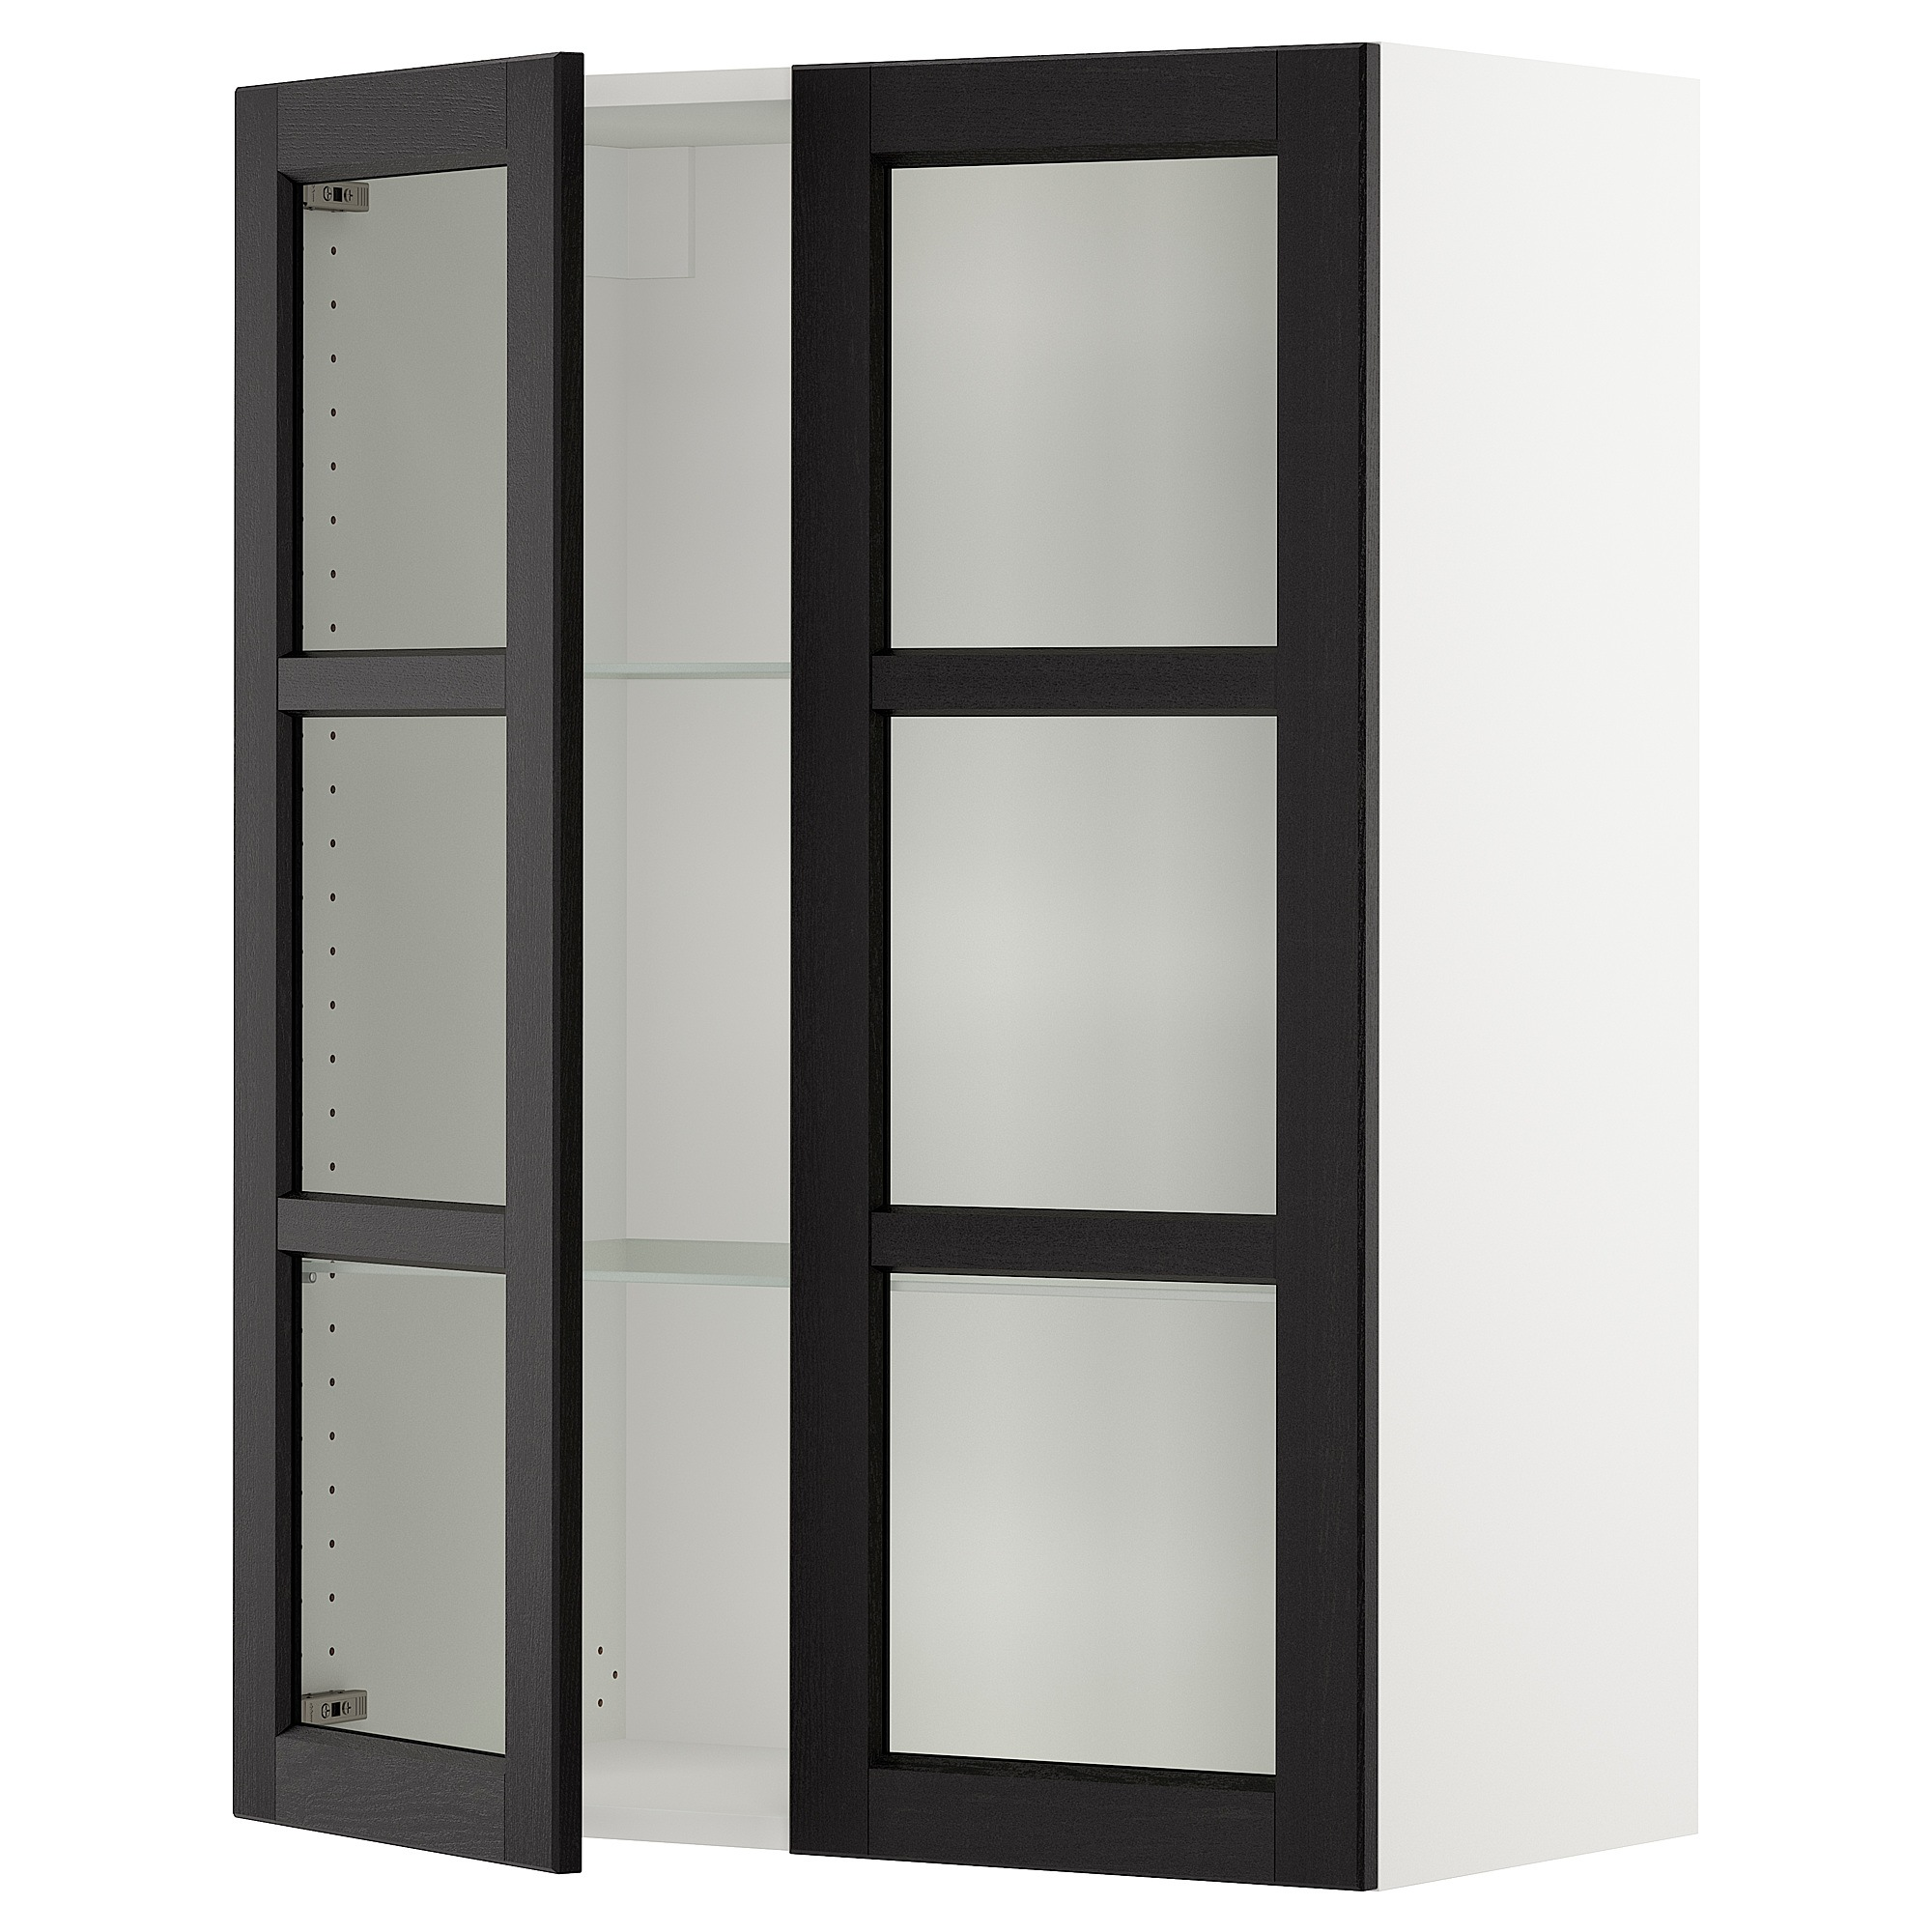 Ikea bookcase with glass doors  IKEA  SEKTION white Wall cabinet with  glass doors Frame colour